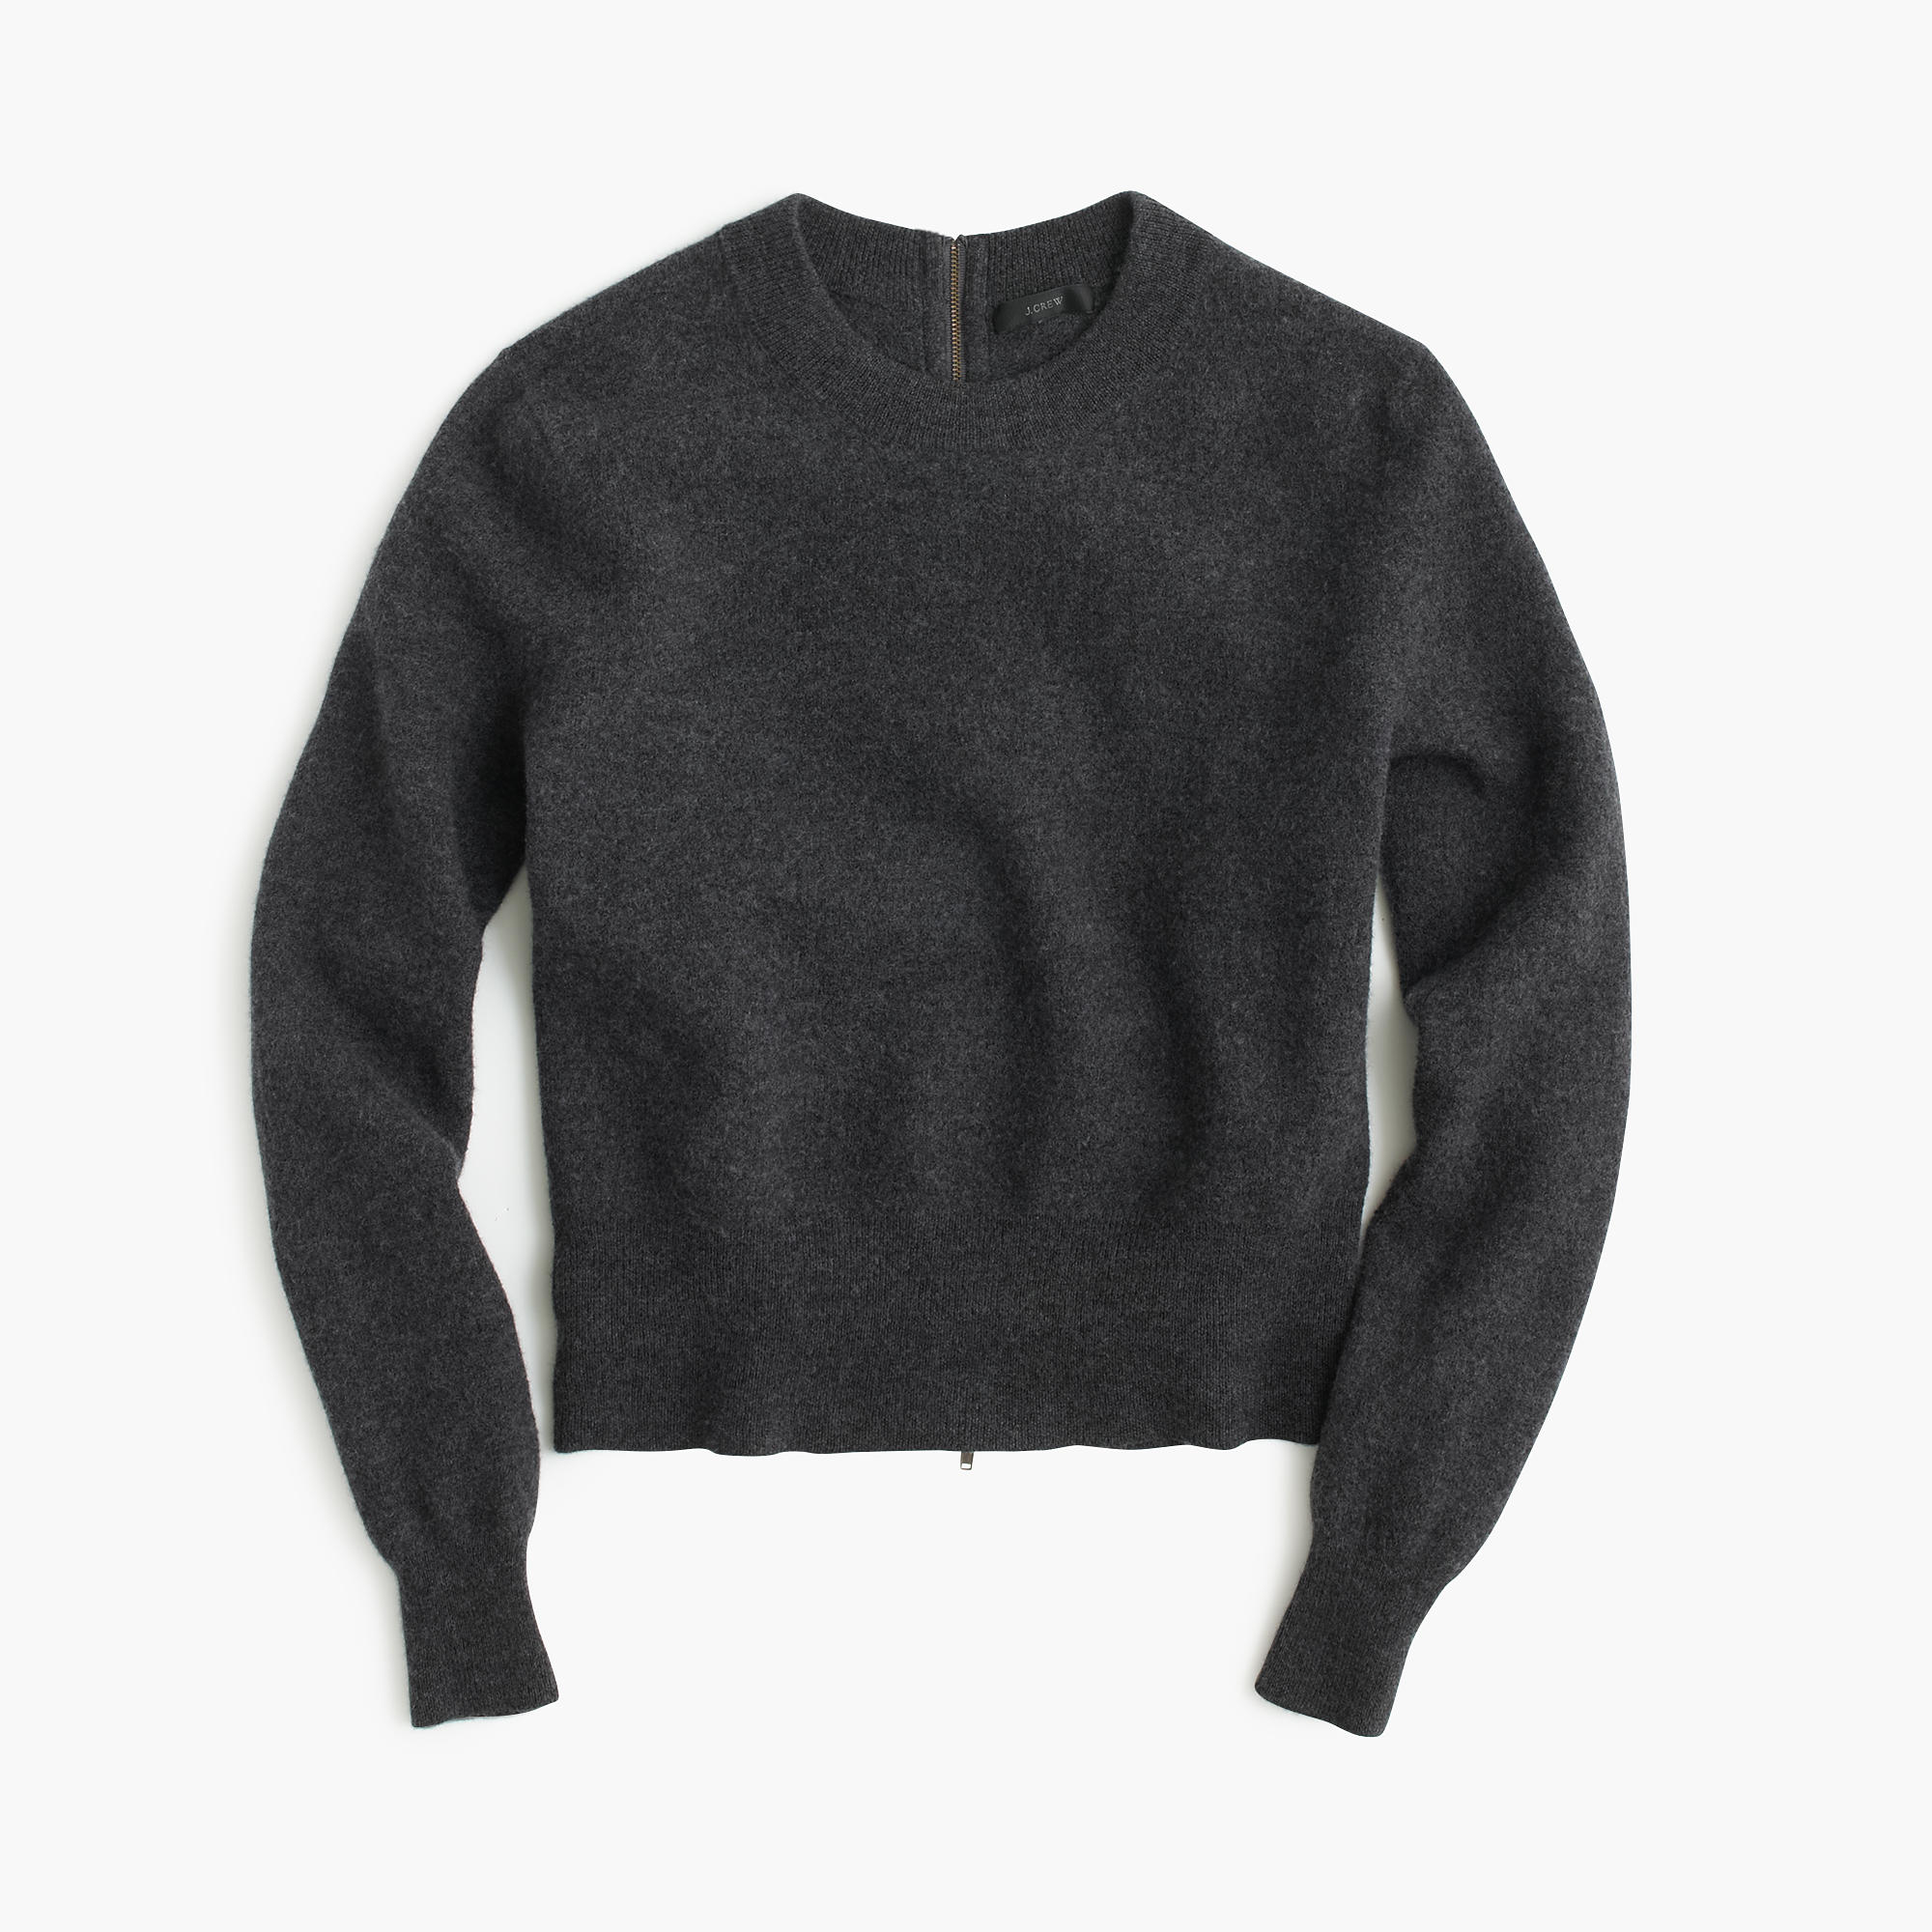 J.crew Wool Back-zip Sweater in Gray | Lyst